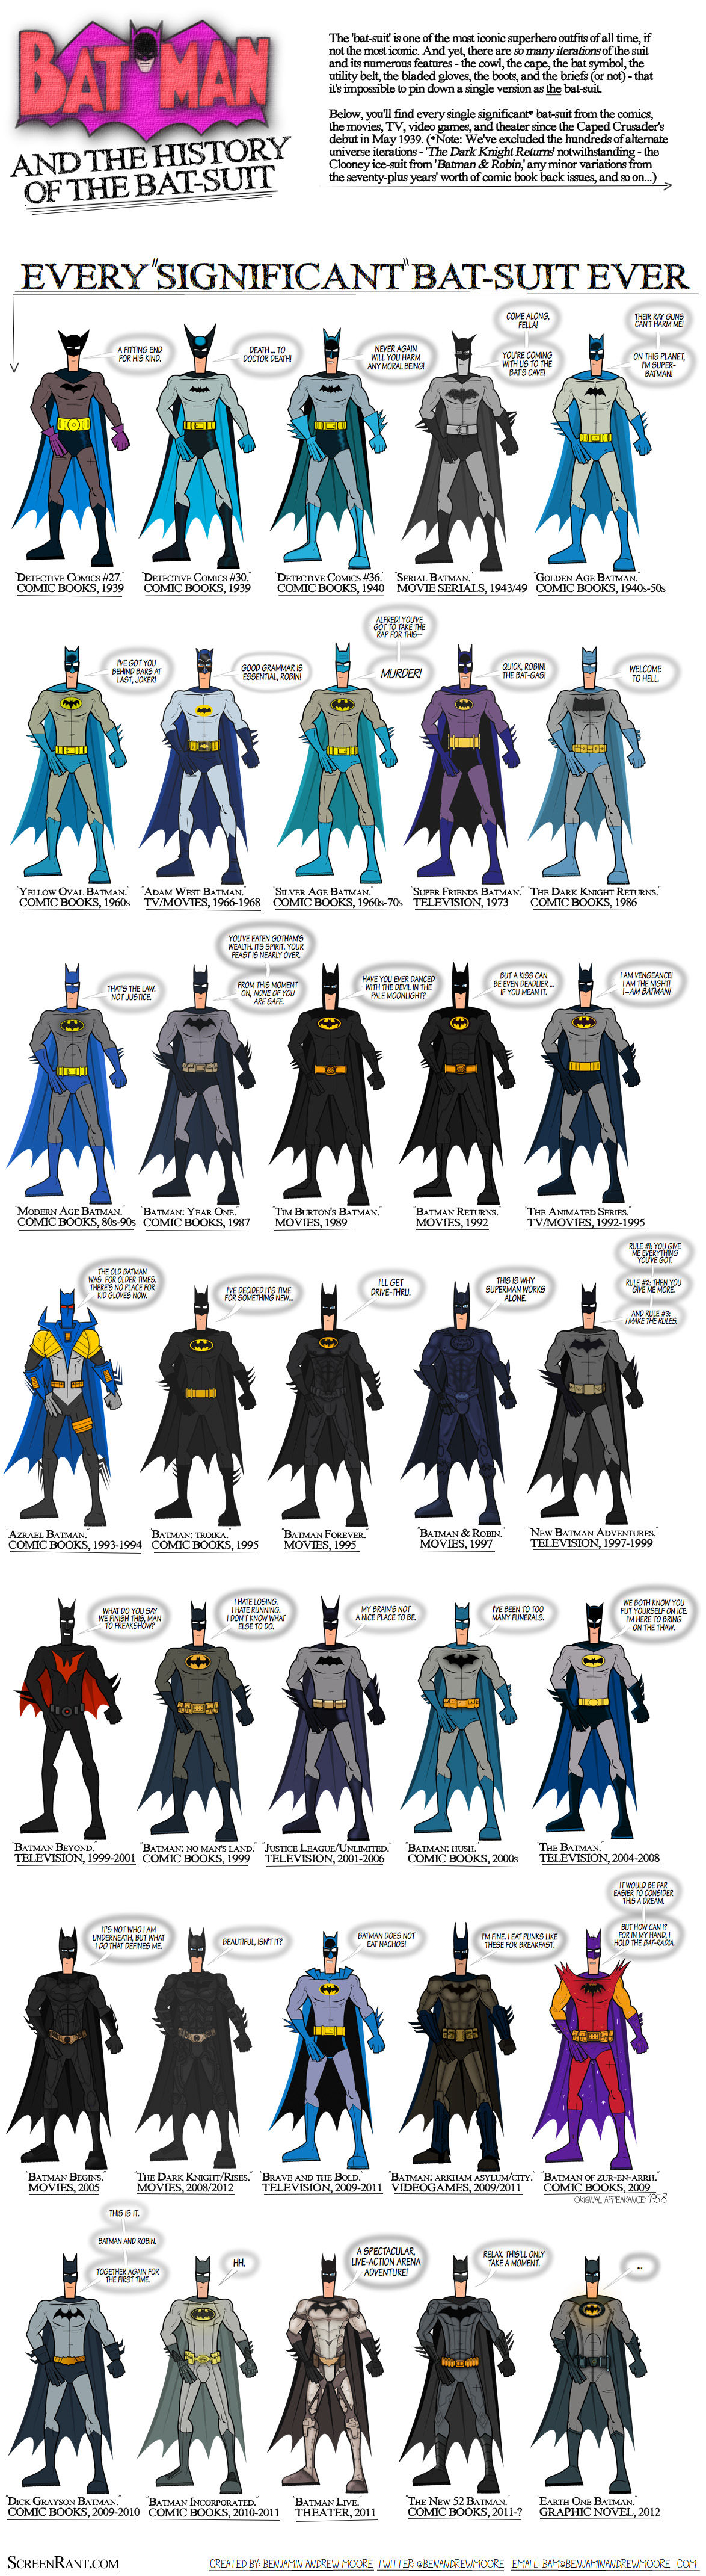 batman infographic Batman Infographic: Every (Significant) Bat Suit Ever